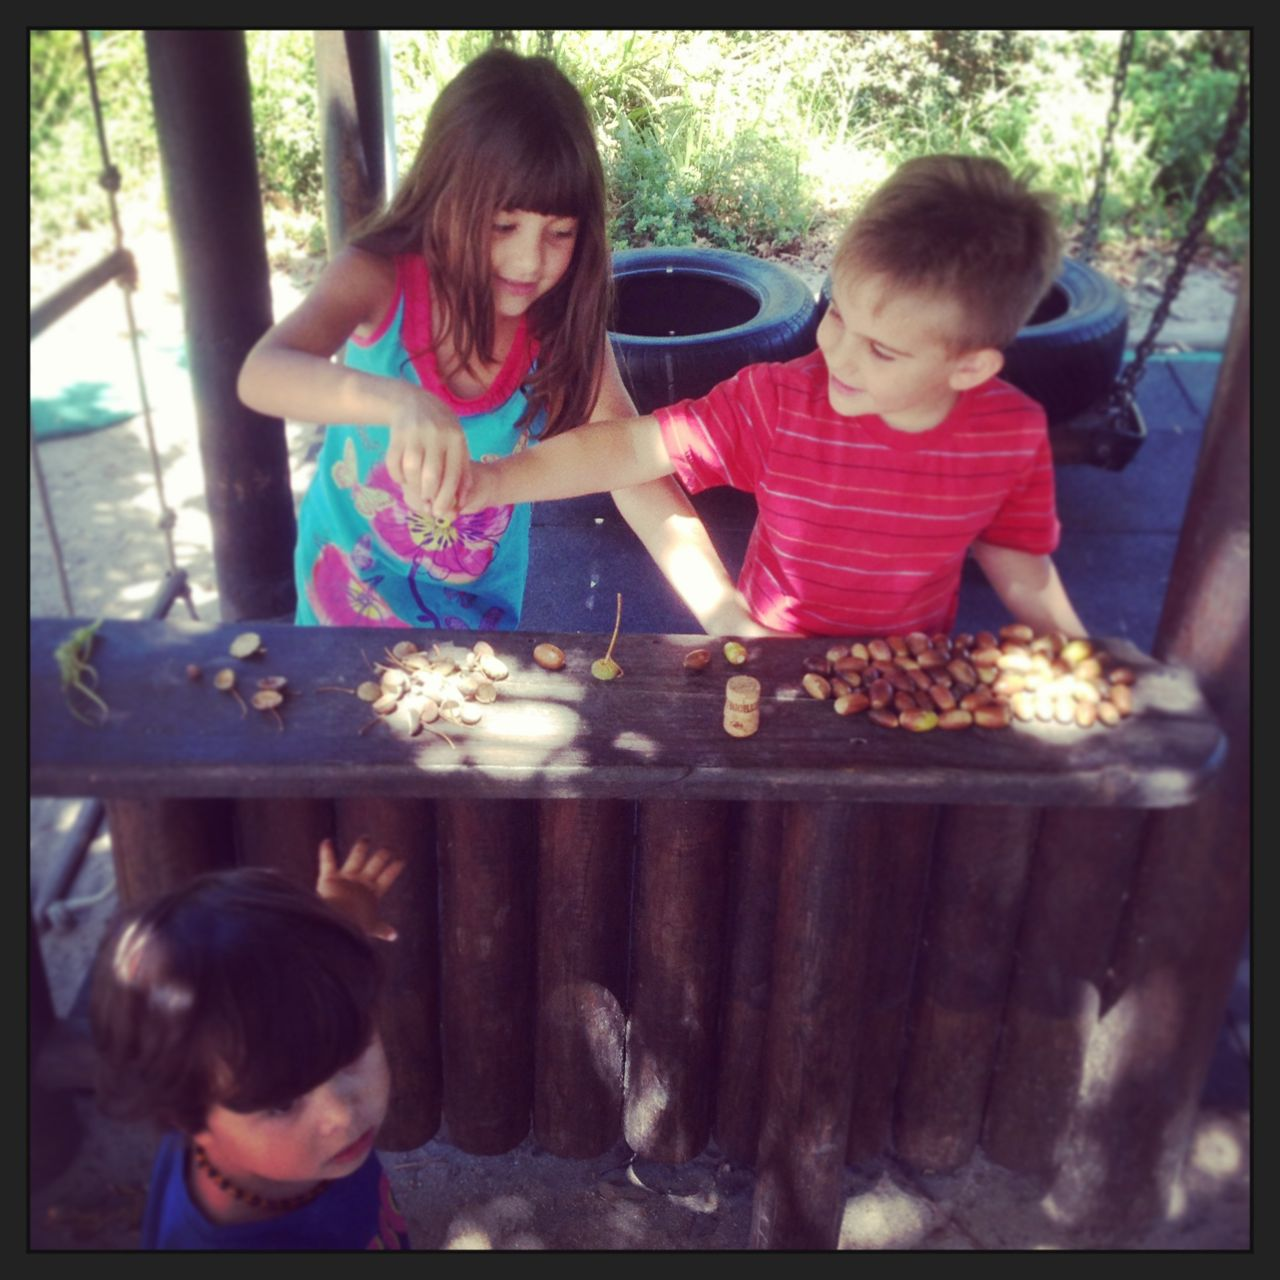 Morgan and Joah made a shop and were *selling* acorns and other bits and pieces to other kids in the playground (at Noordhoek Village)...